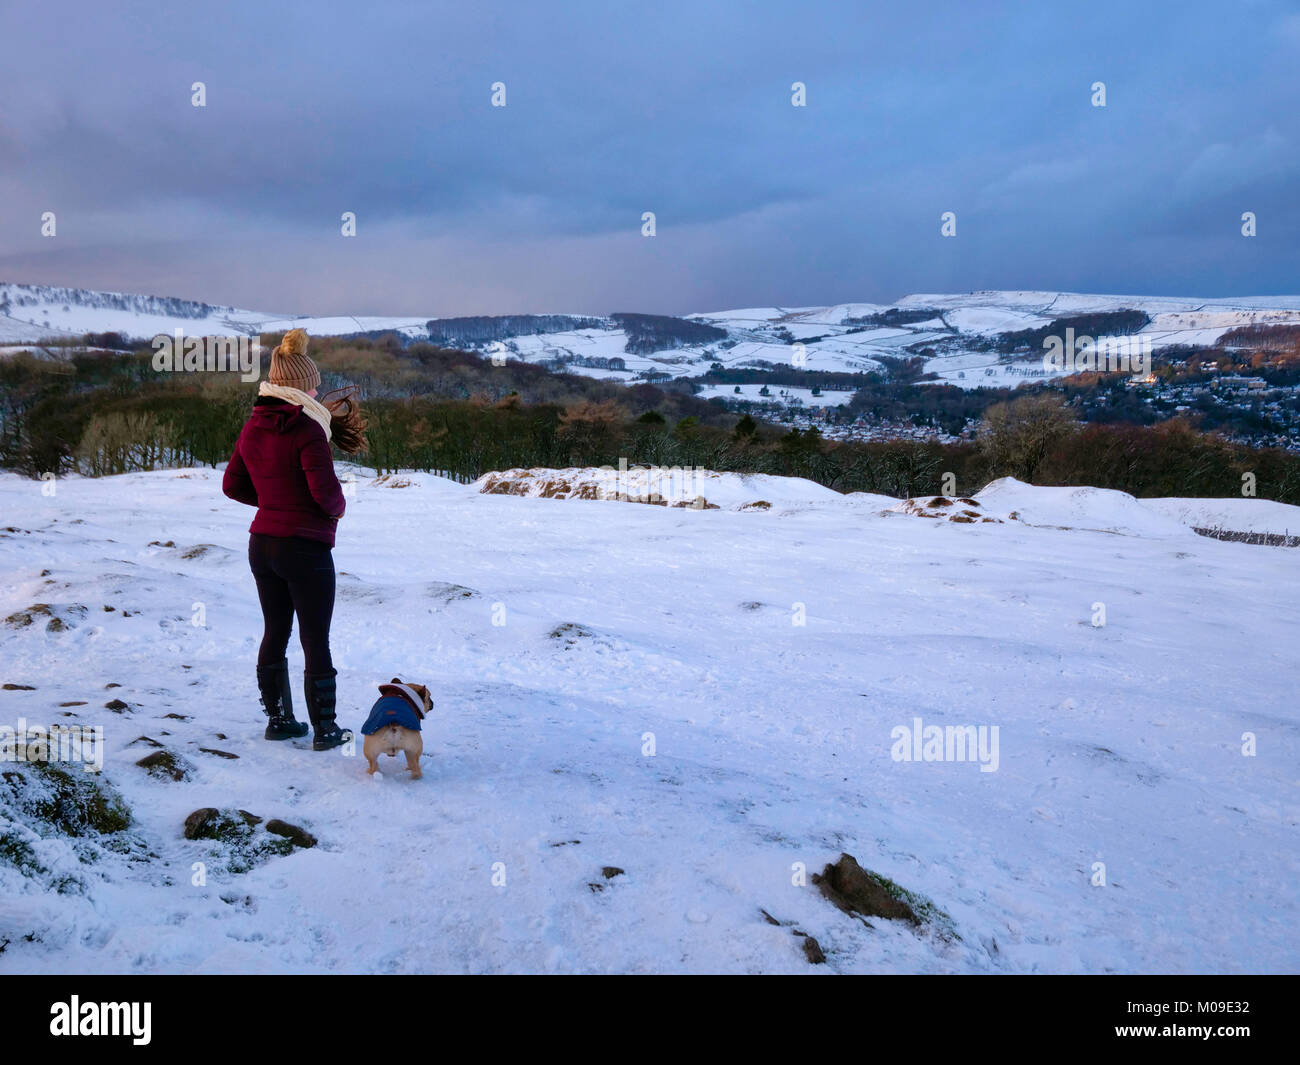 Buxton, Derbyshire, UK. 19th January, 2018.  UK Weather: Snow on the hills in the Derbyshire countryside near Ashbourne - Stock Image